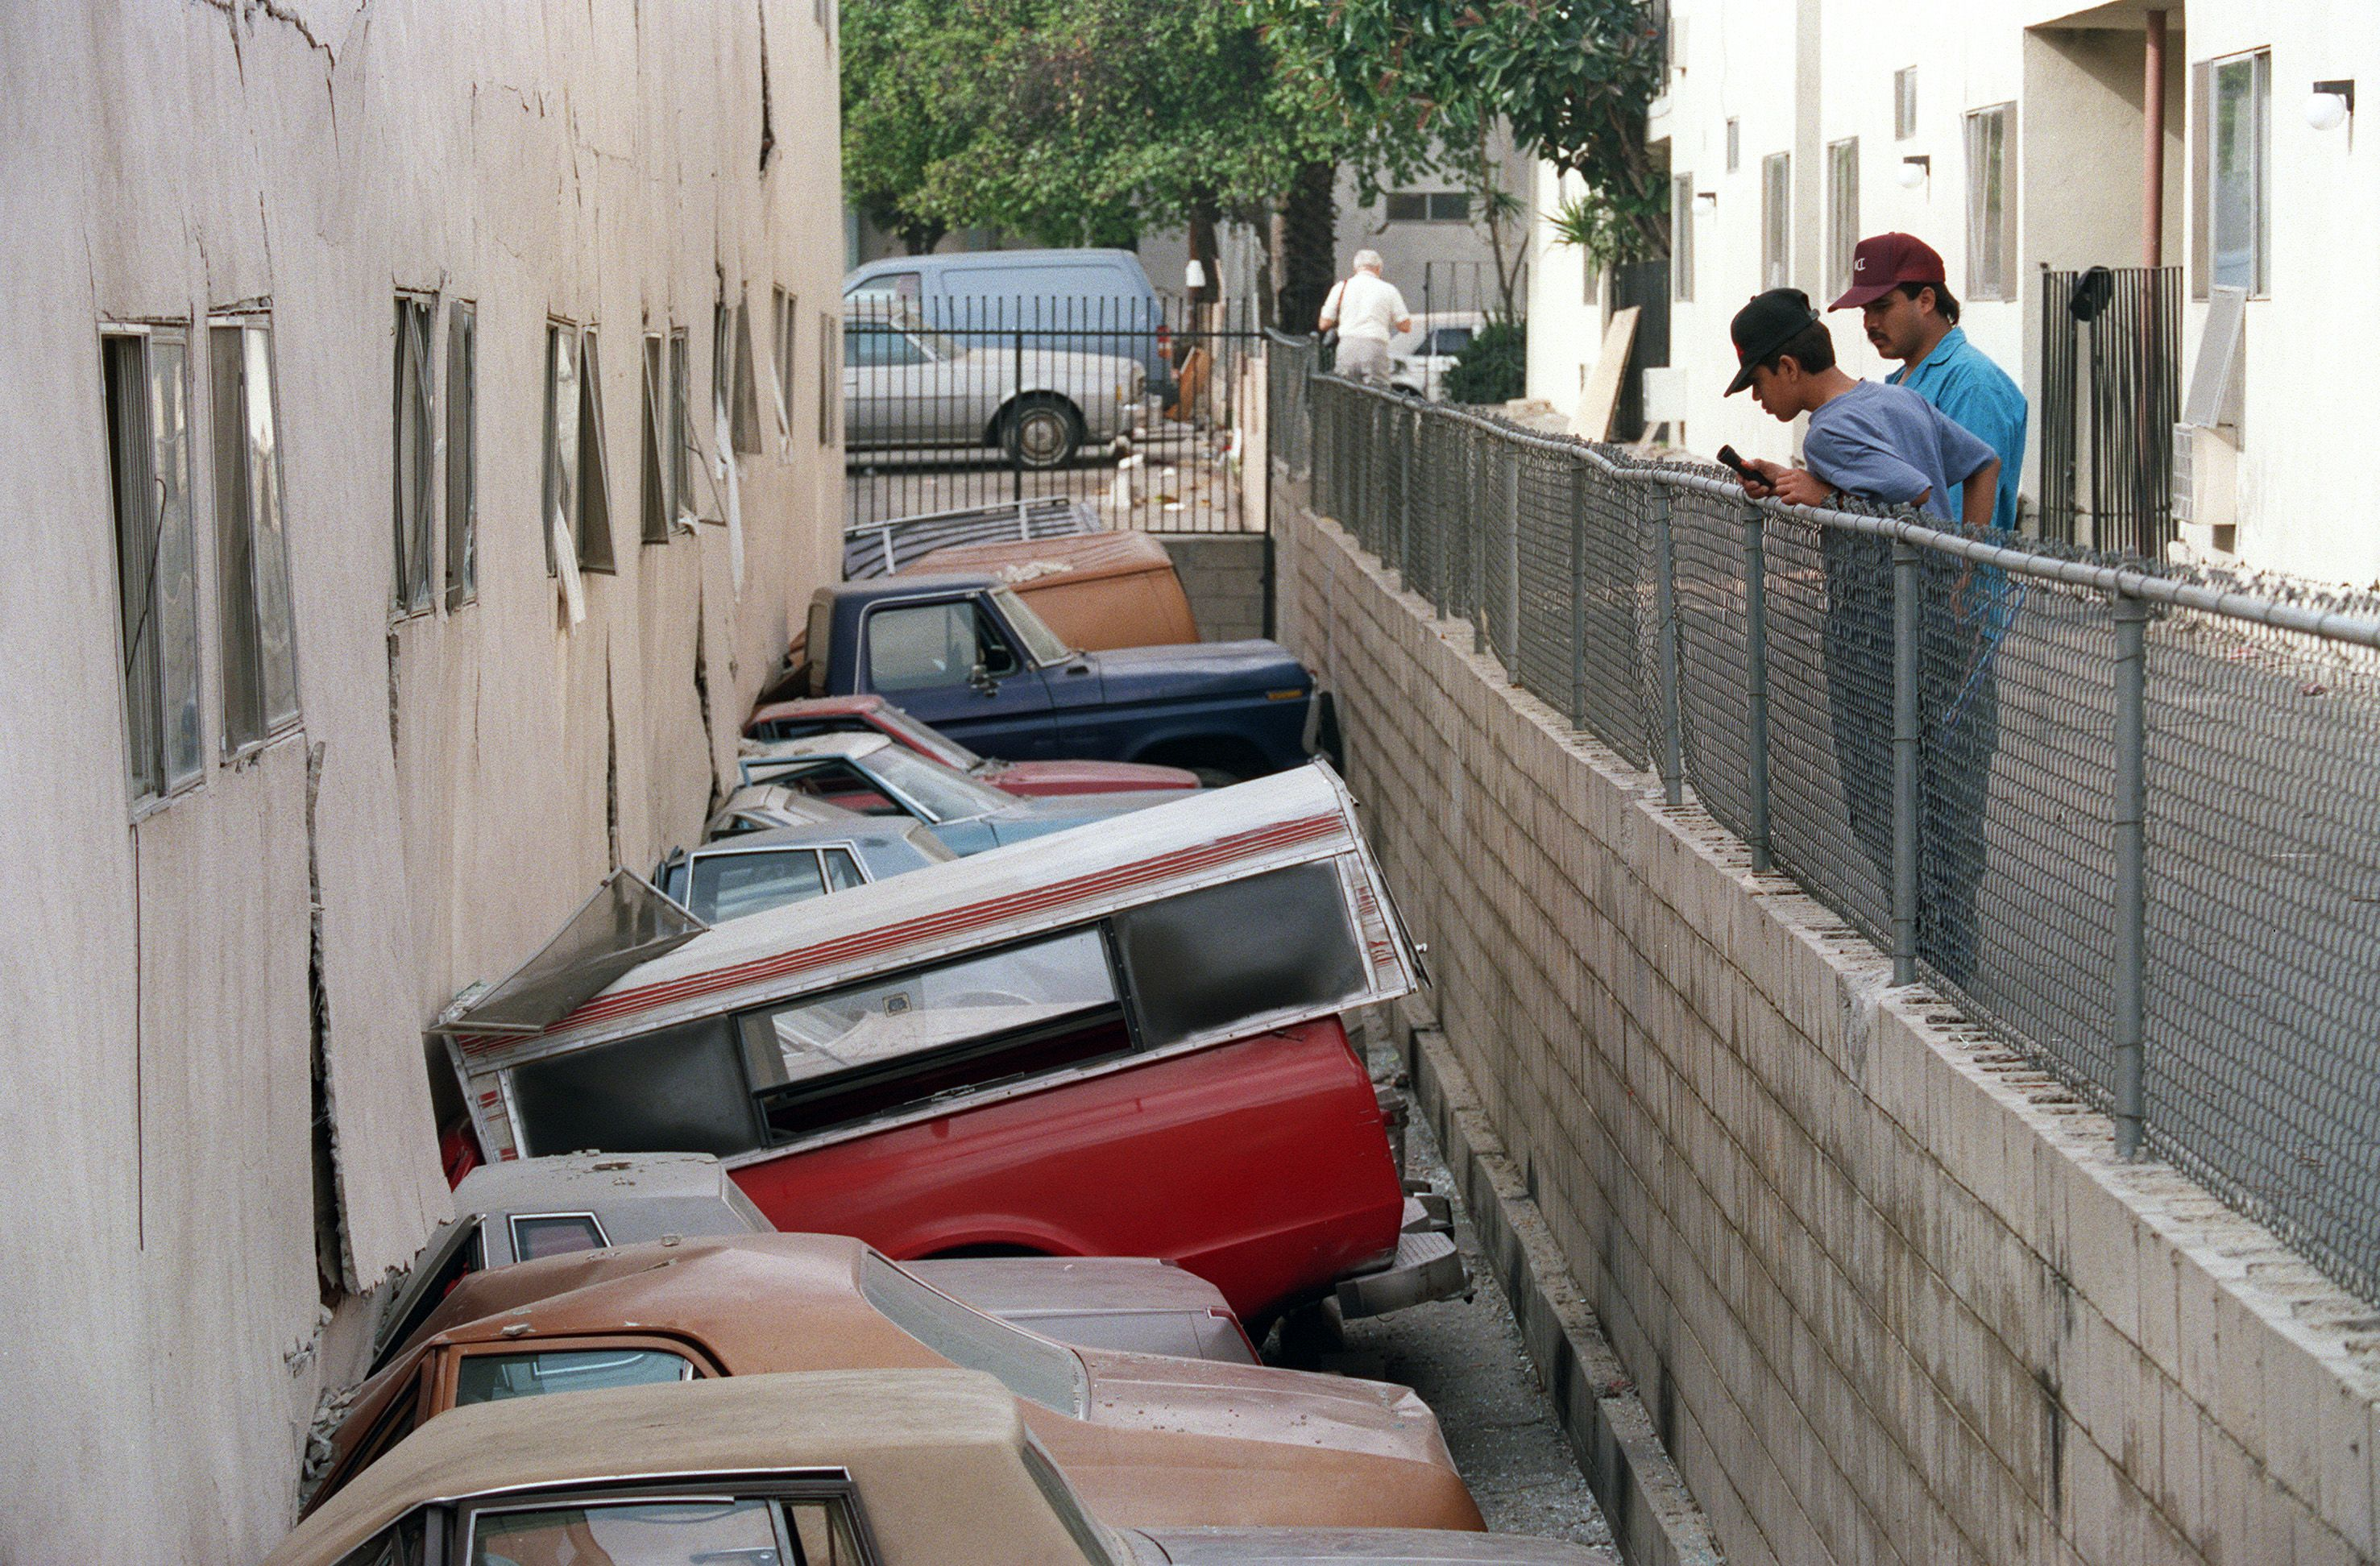 10 Earthquake-Related Questions To Ask Your Landlord Immediately